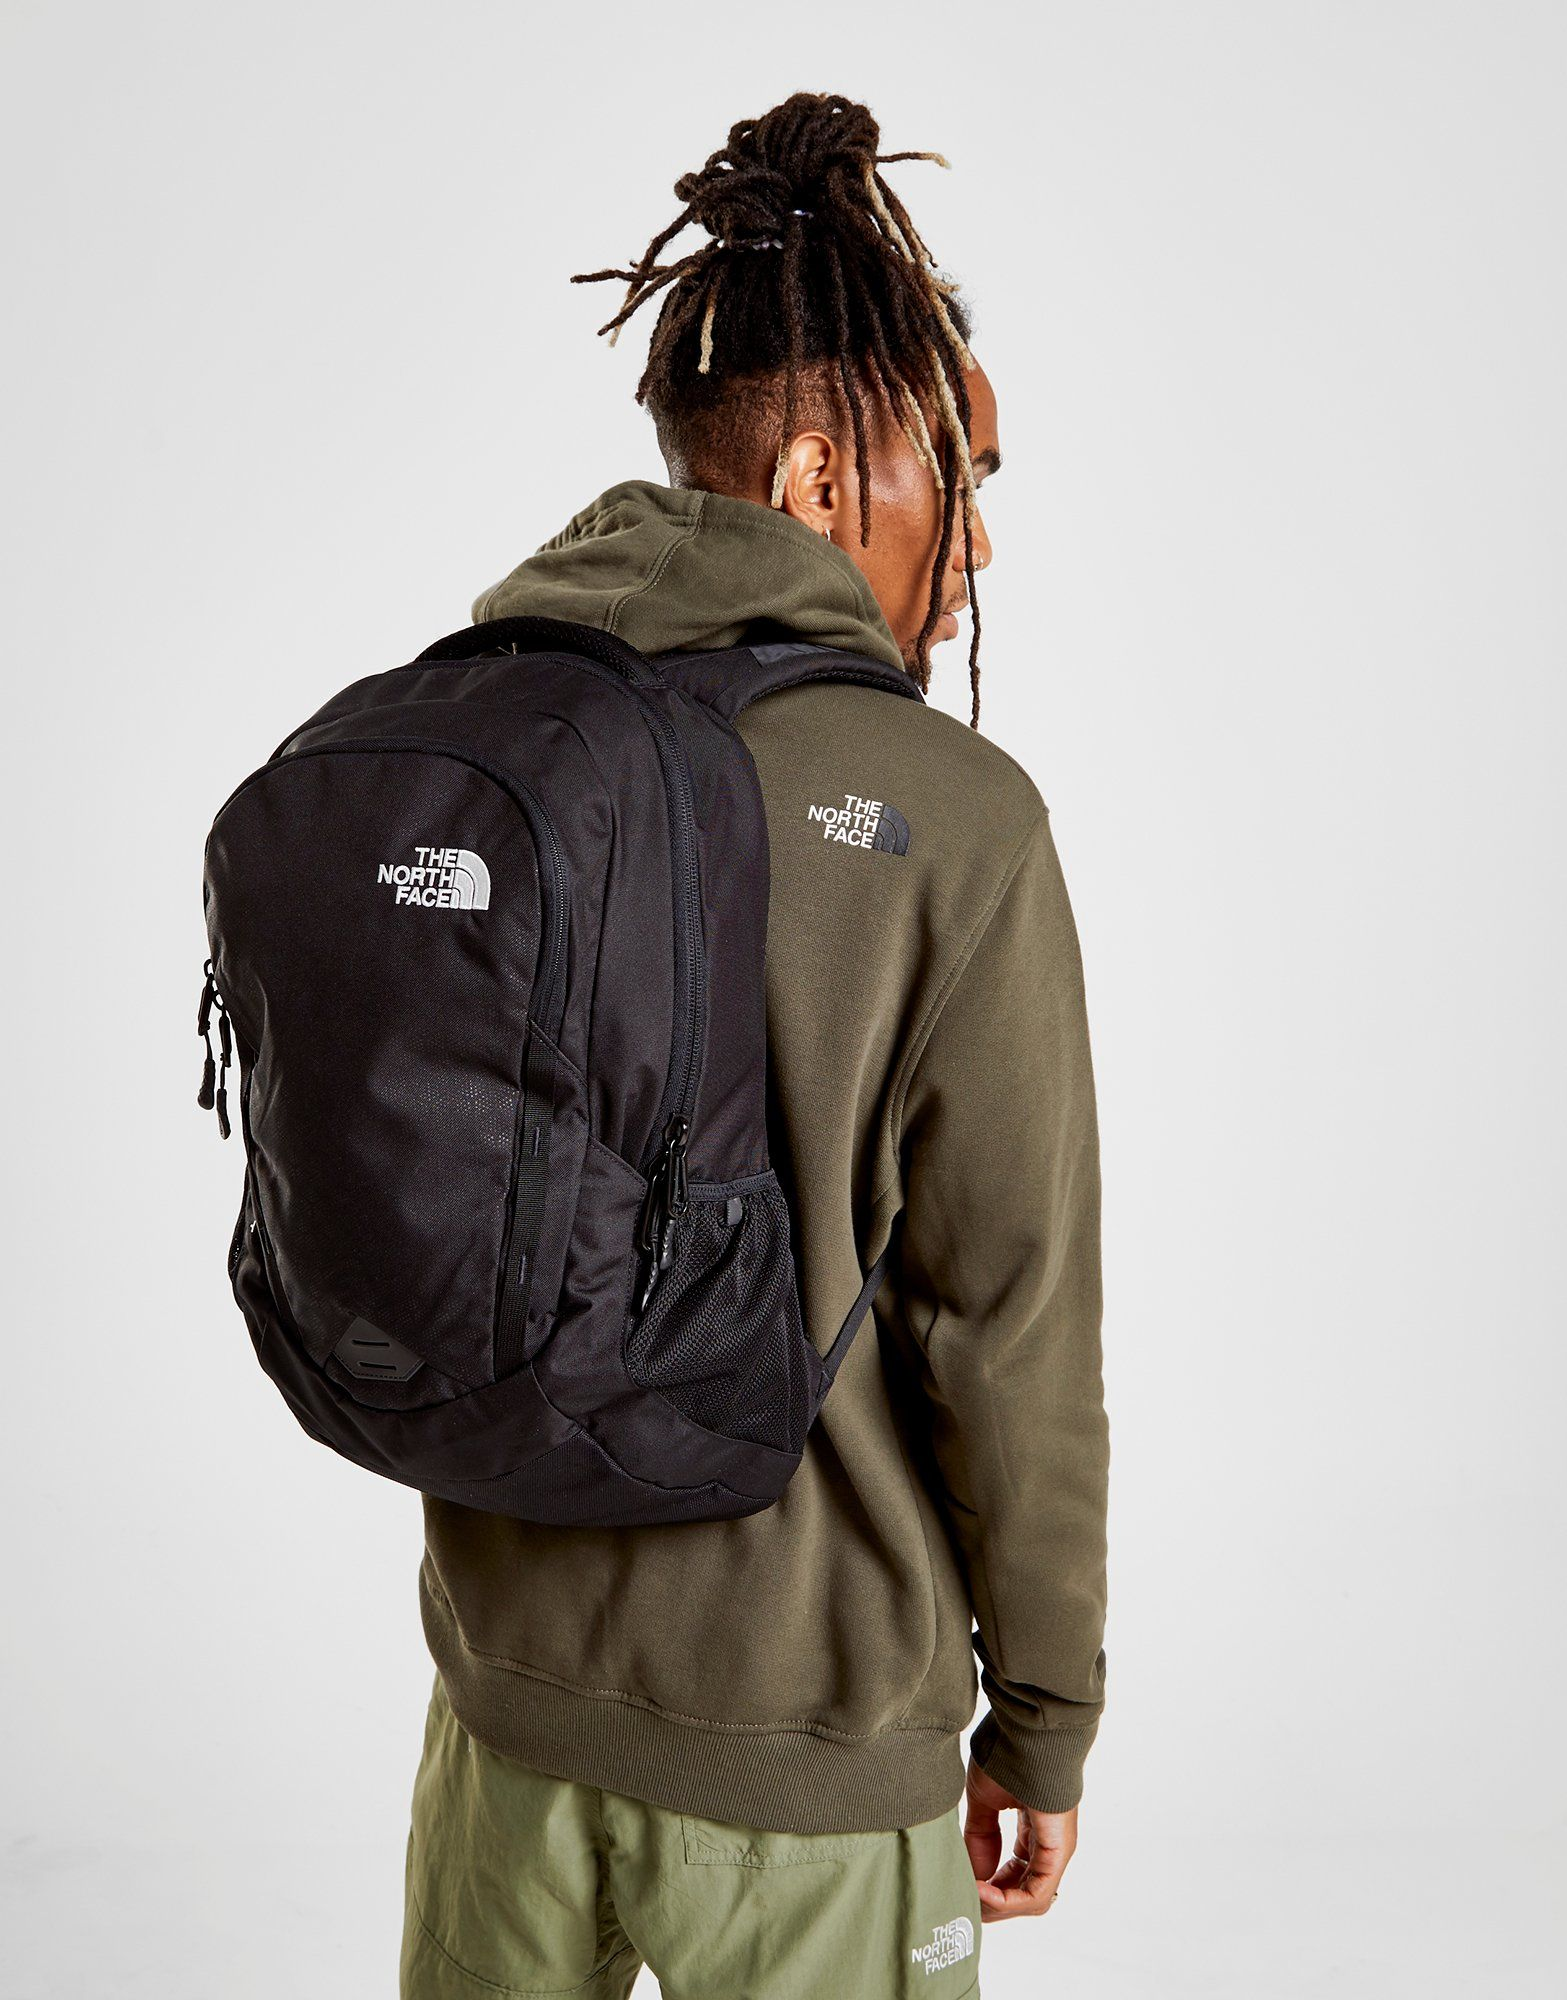 b2db9638be The North Face Vault Backpack ...